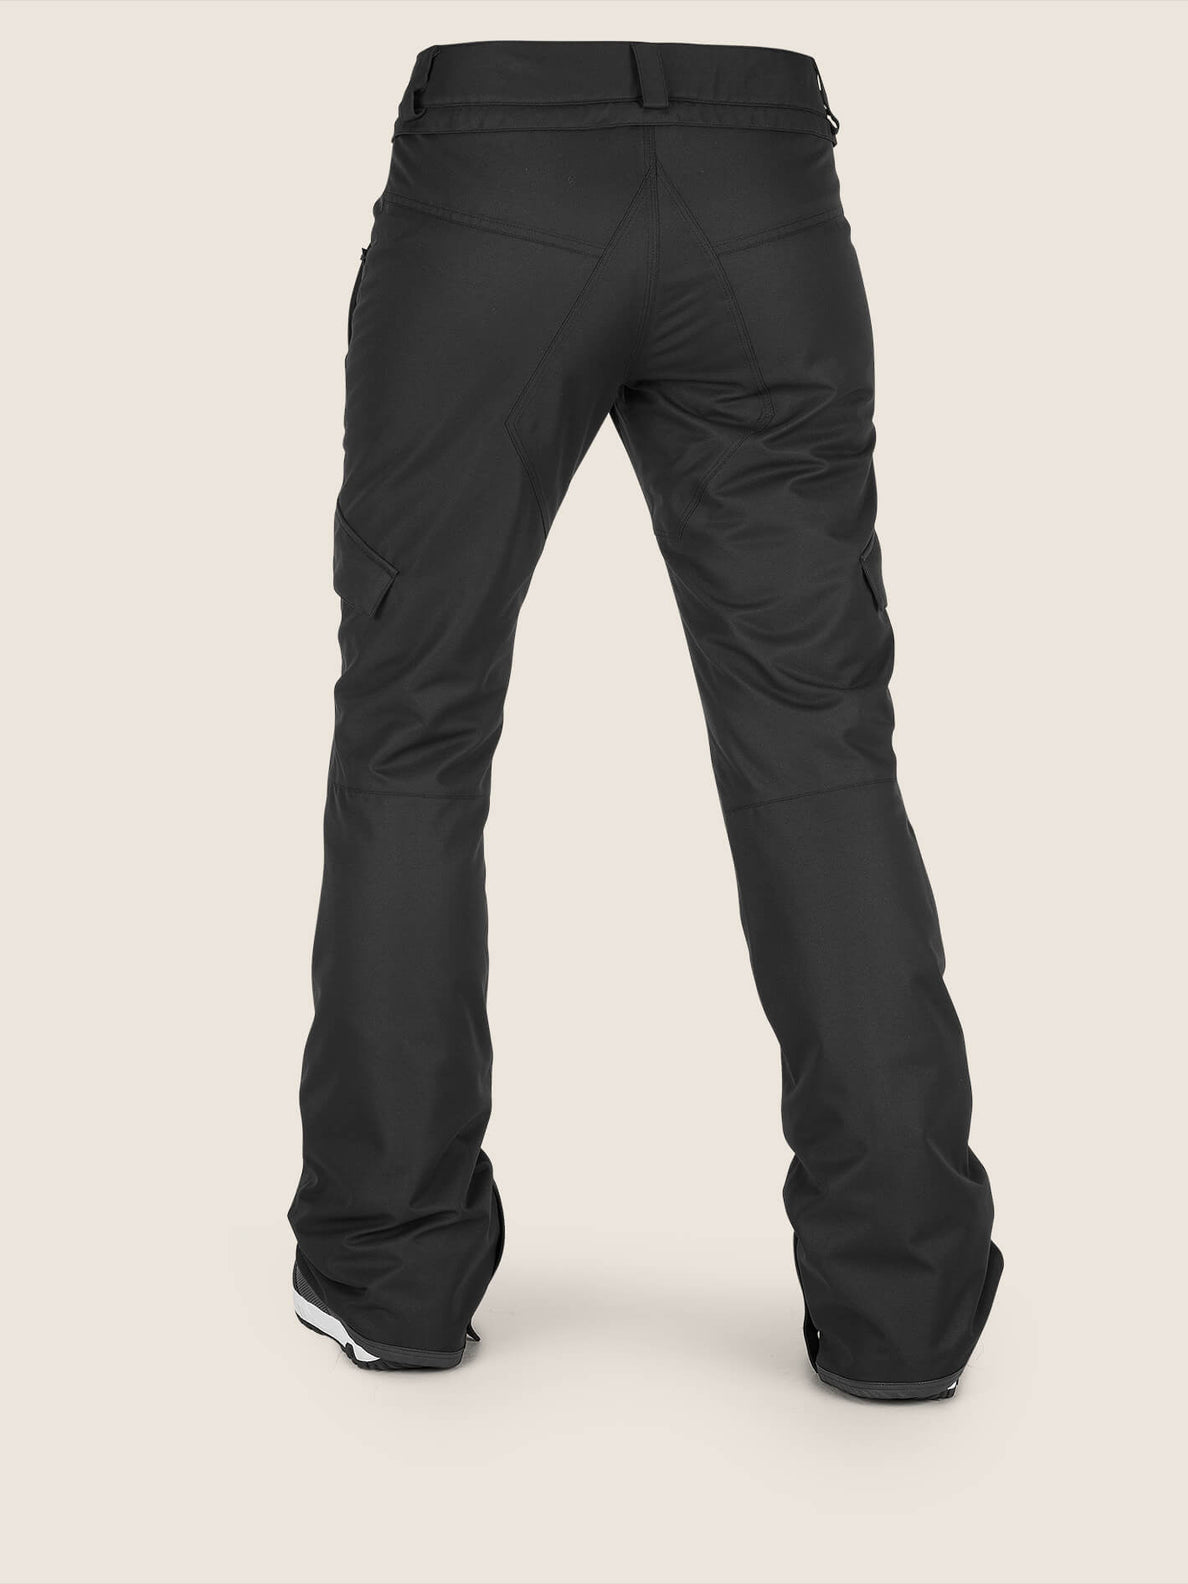 Bridger Insulated Pant In Black, Back View